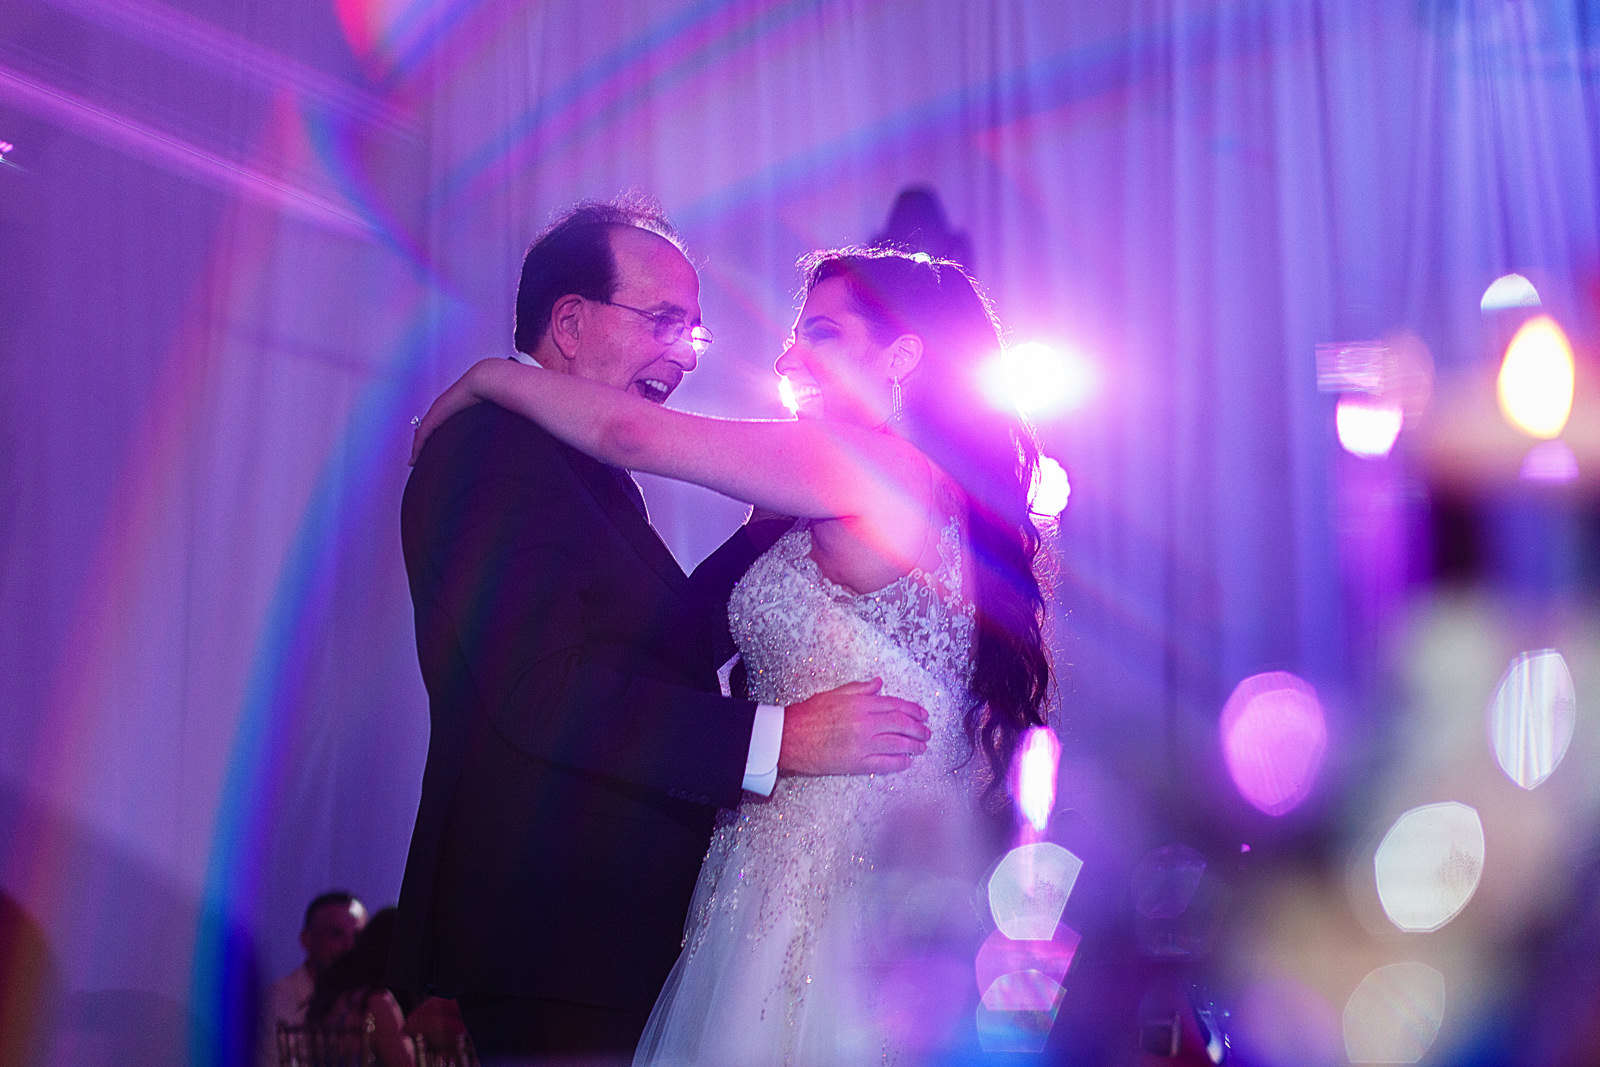 Bride and her dad dancing during the wedding reception, image taken through a prism.